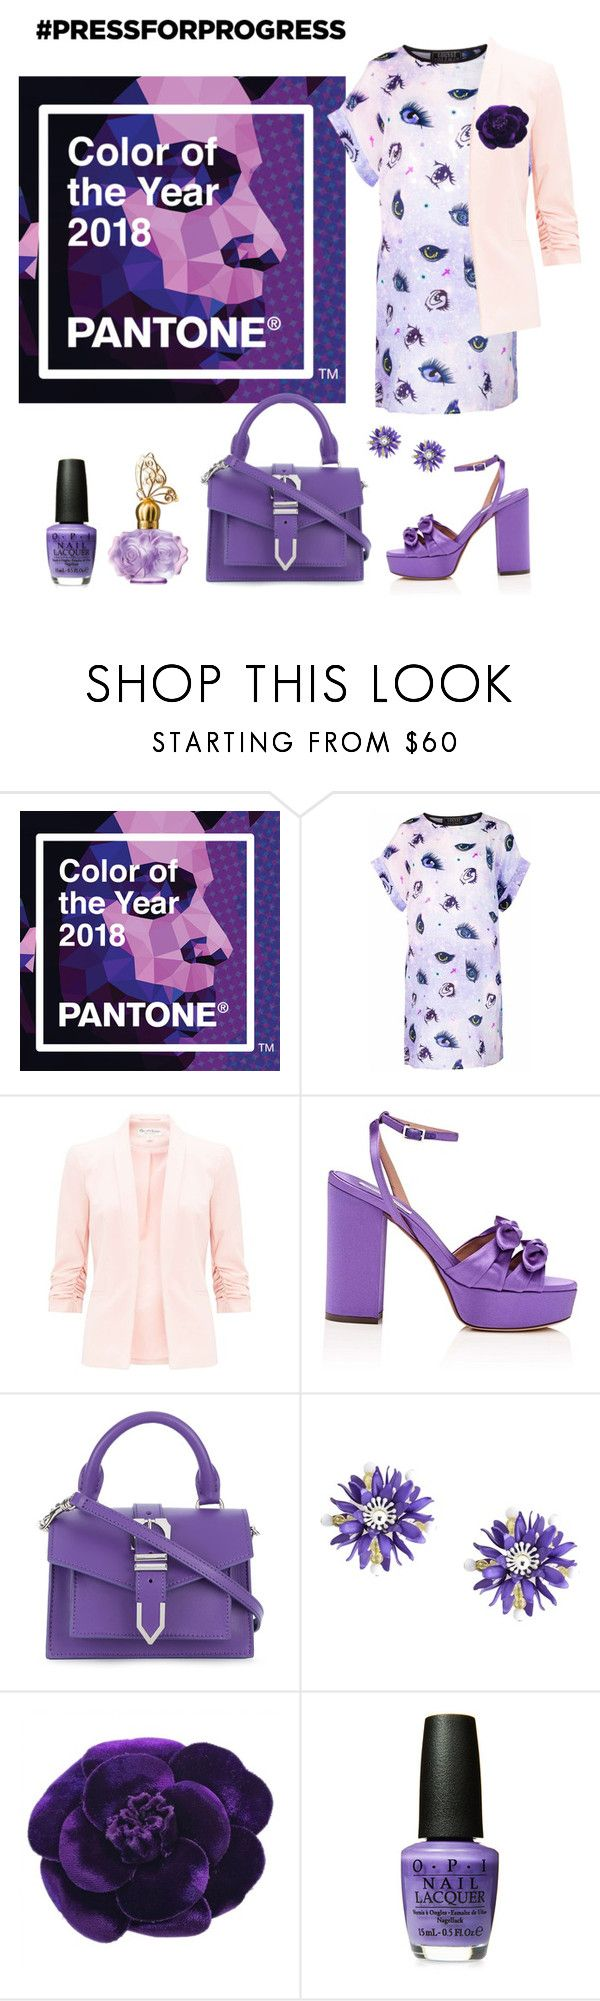 """""""Purple: Smartly dressed casual"""" by cheekylightfic-writer ❤ liked on Polyvore featuring Louise Coleman, Miss Selfridge, Tabitha Simmons, Versus, Moschino, Chanel, purplepower, internationalwomensday and pressforprogress"""